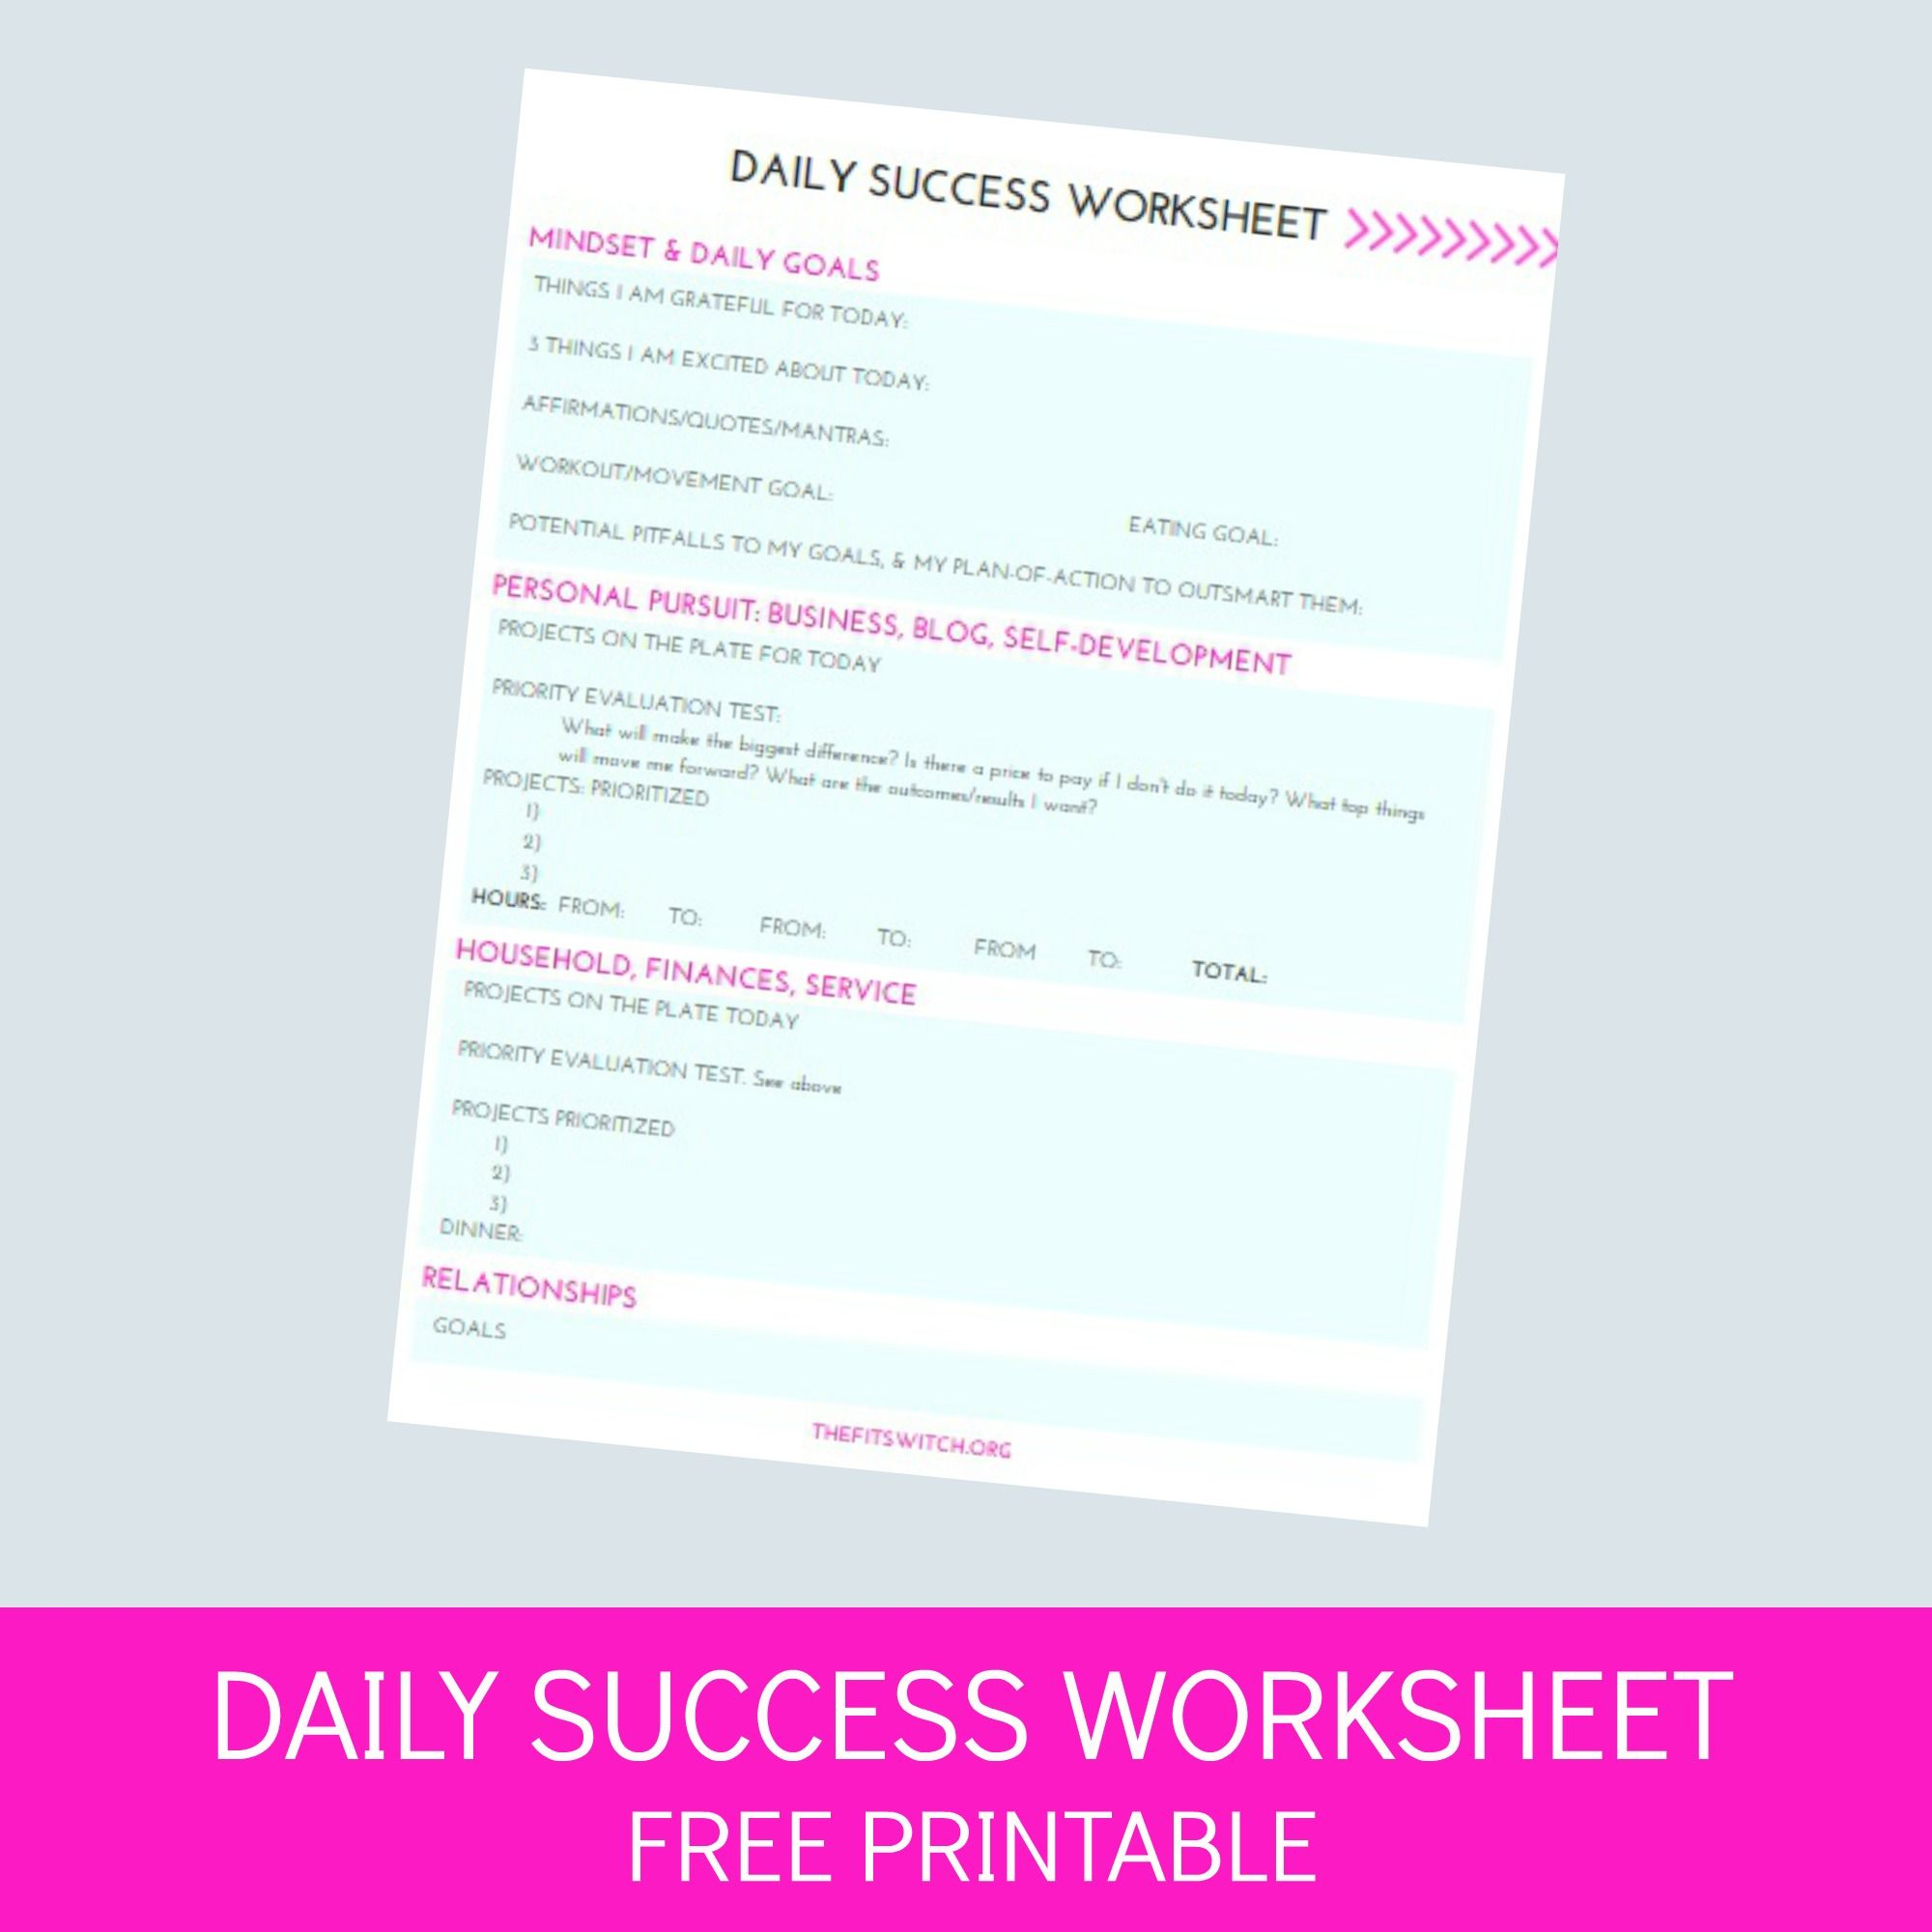 Daily Success Worksheet